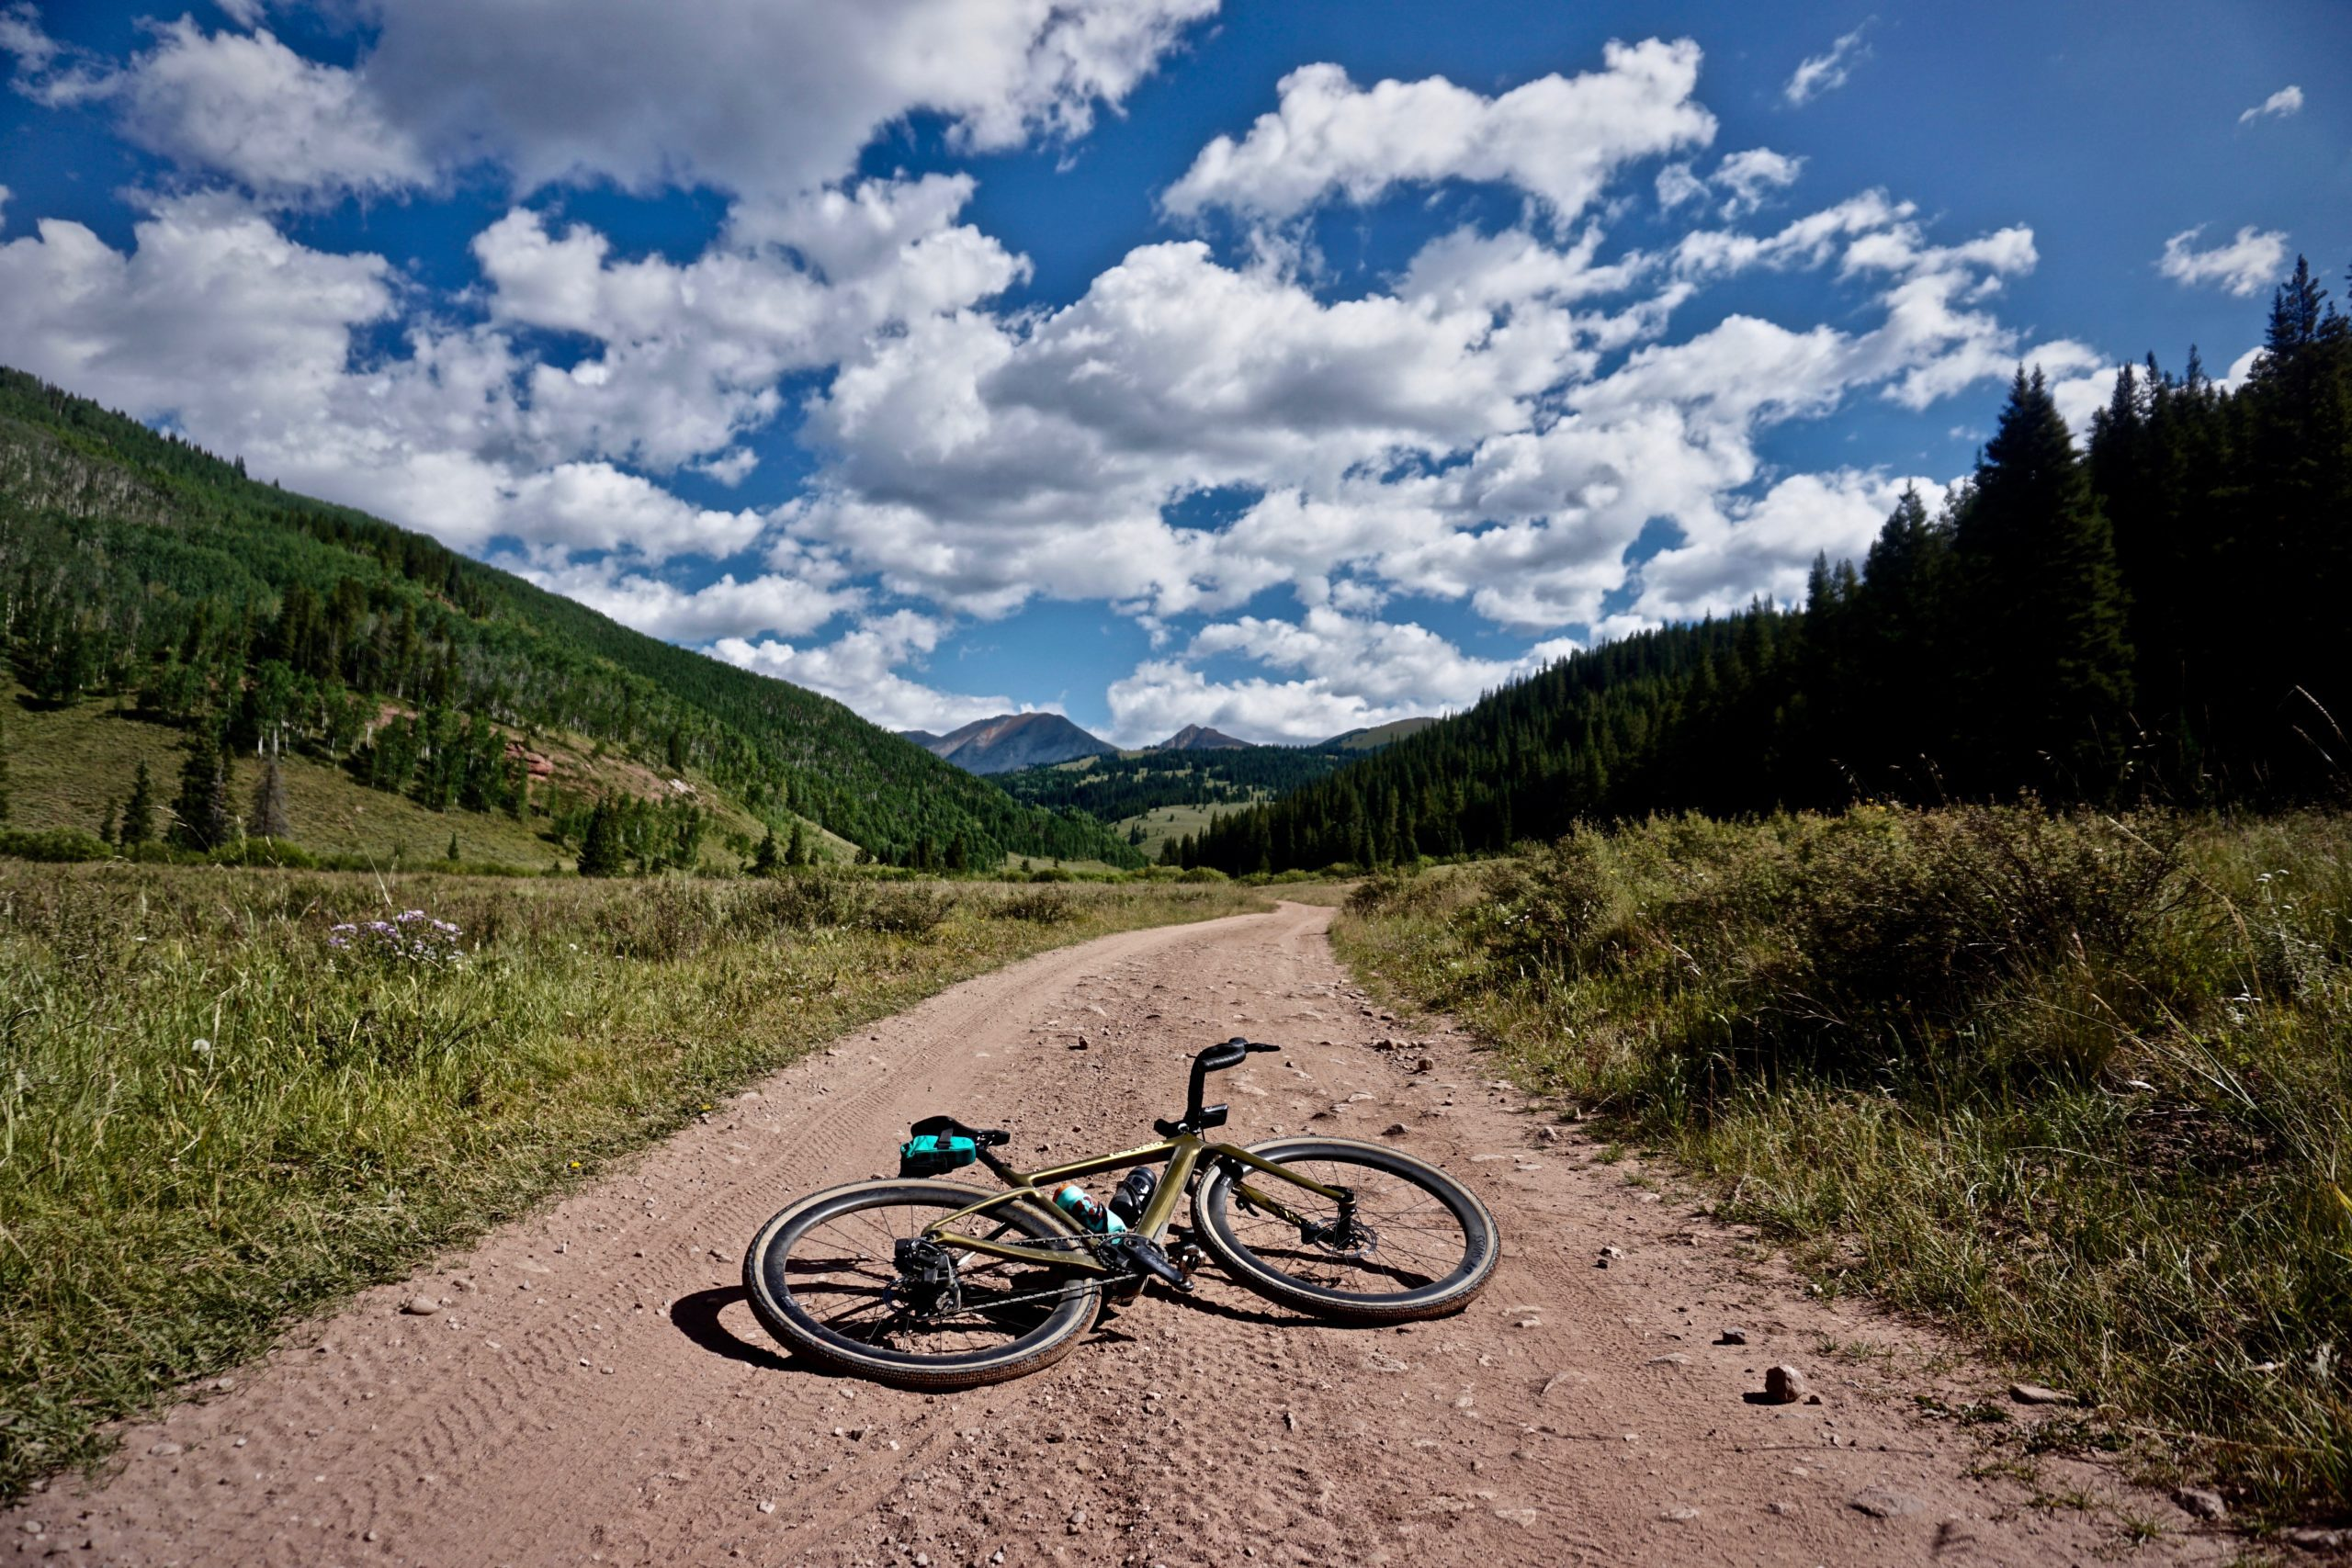 Gravel bike on dirt road near Crested Butte, Colorado.